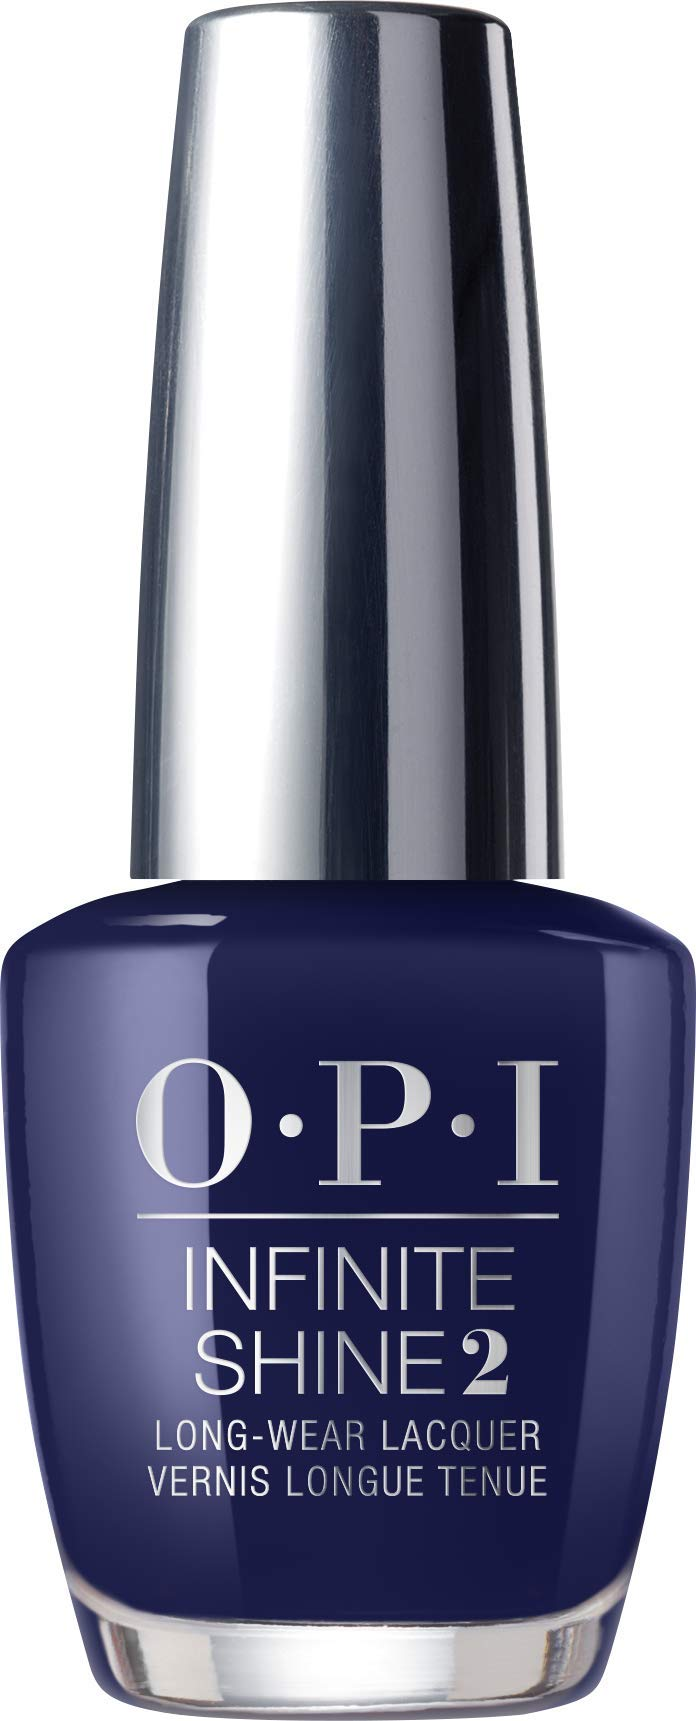 OPI Nail Polish, Infinite Shine Long Lasting Nail Polish, Blue, 0.5 fl oz